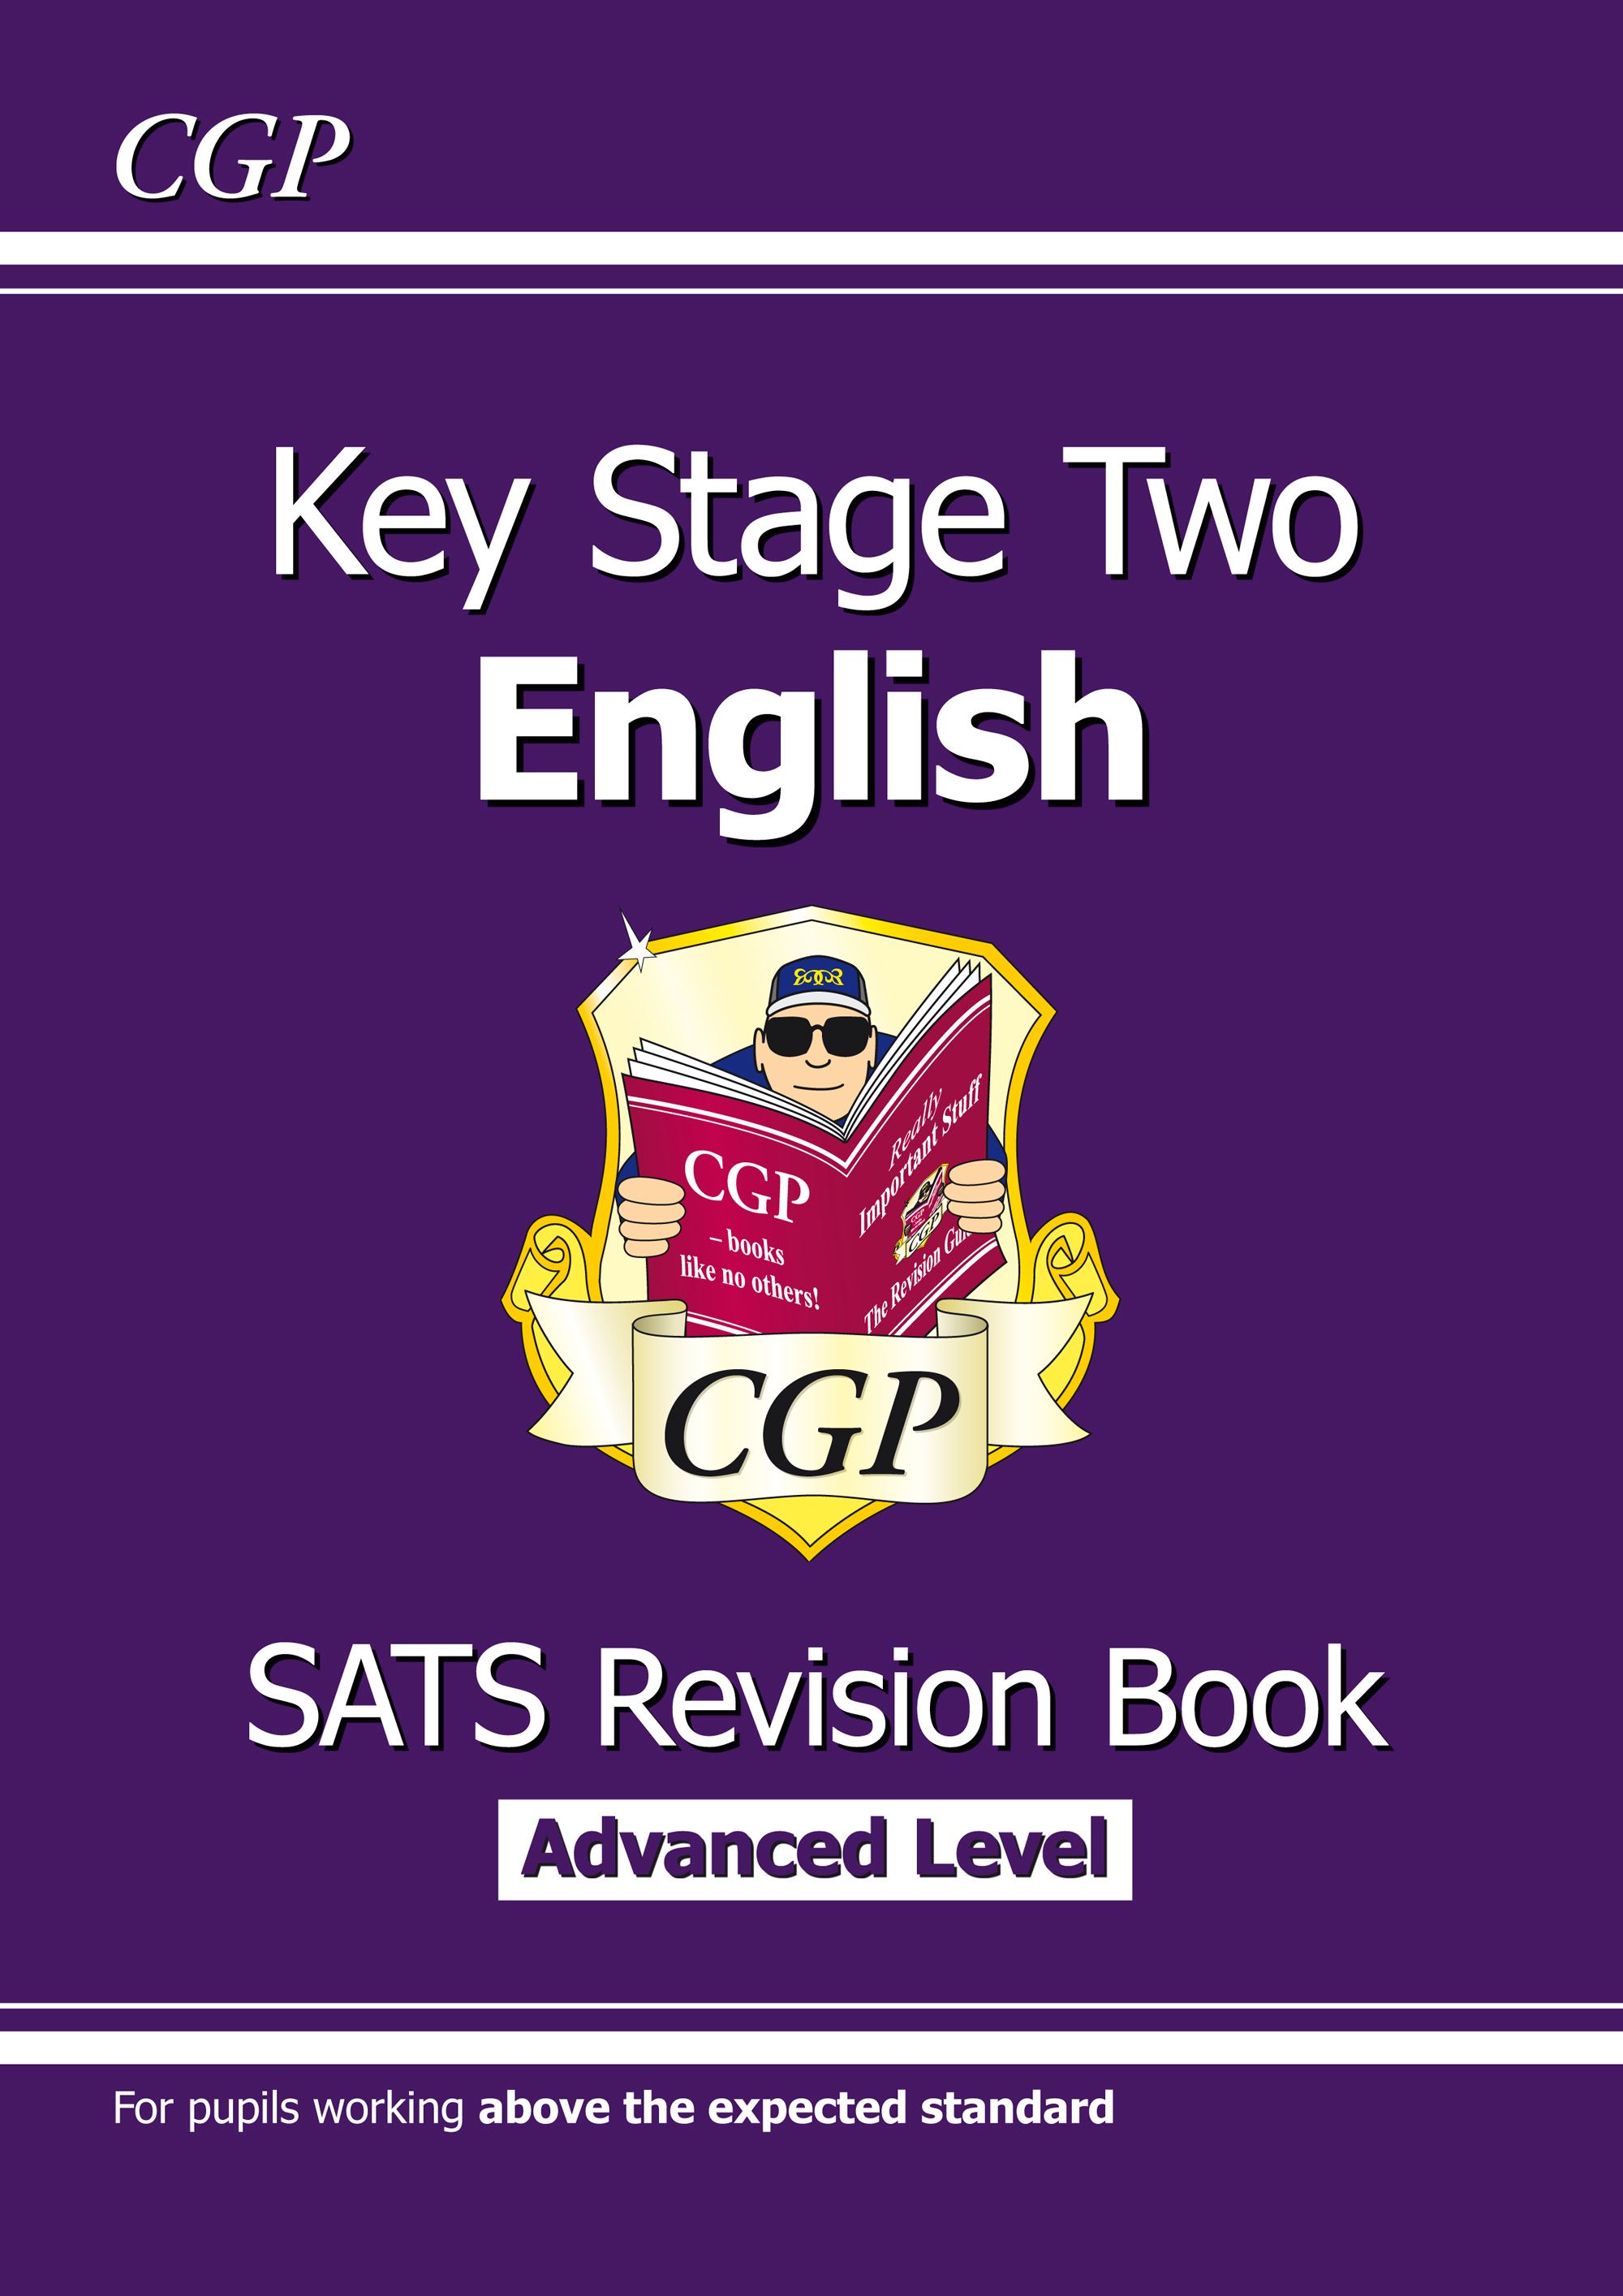 E6HR22 - KS2 English Targeted SATS Revision Book - Advanced Level (for the 2020 tests)